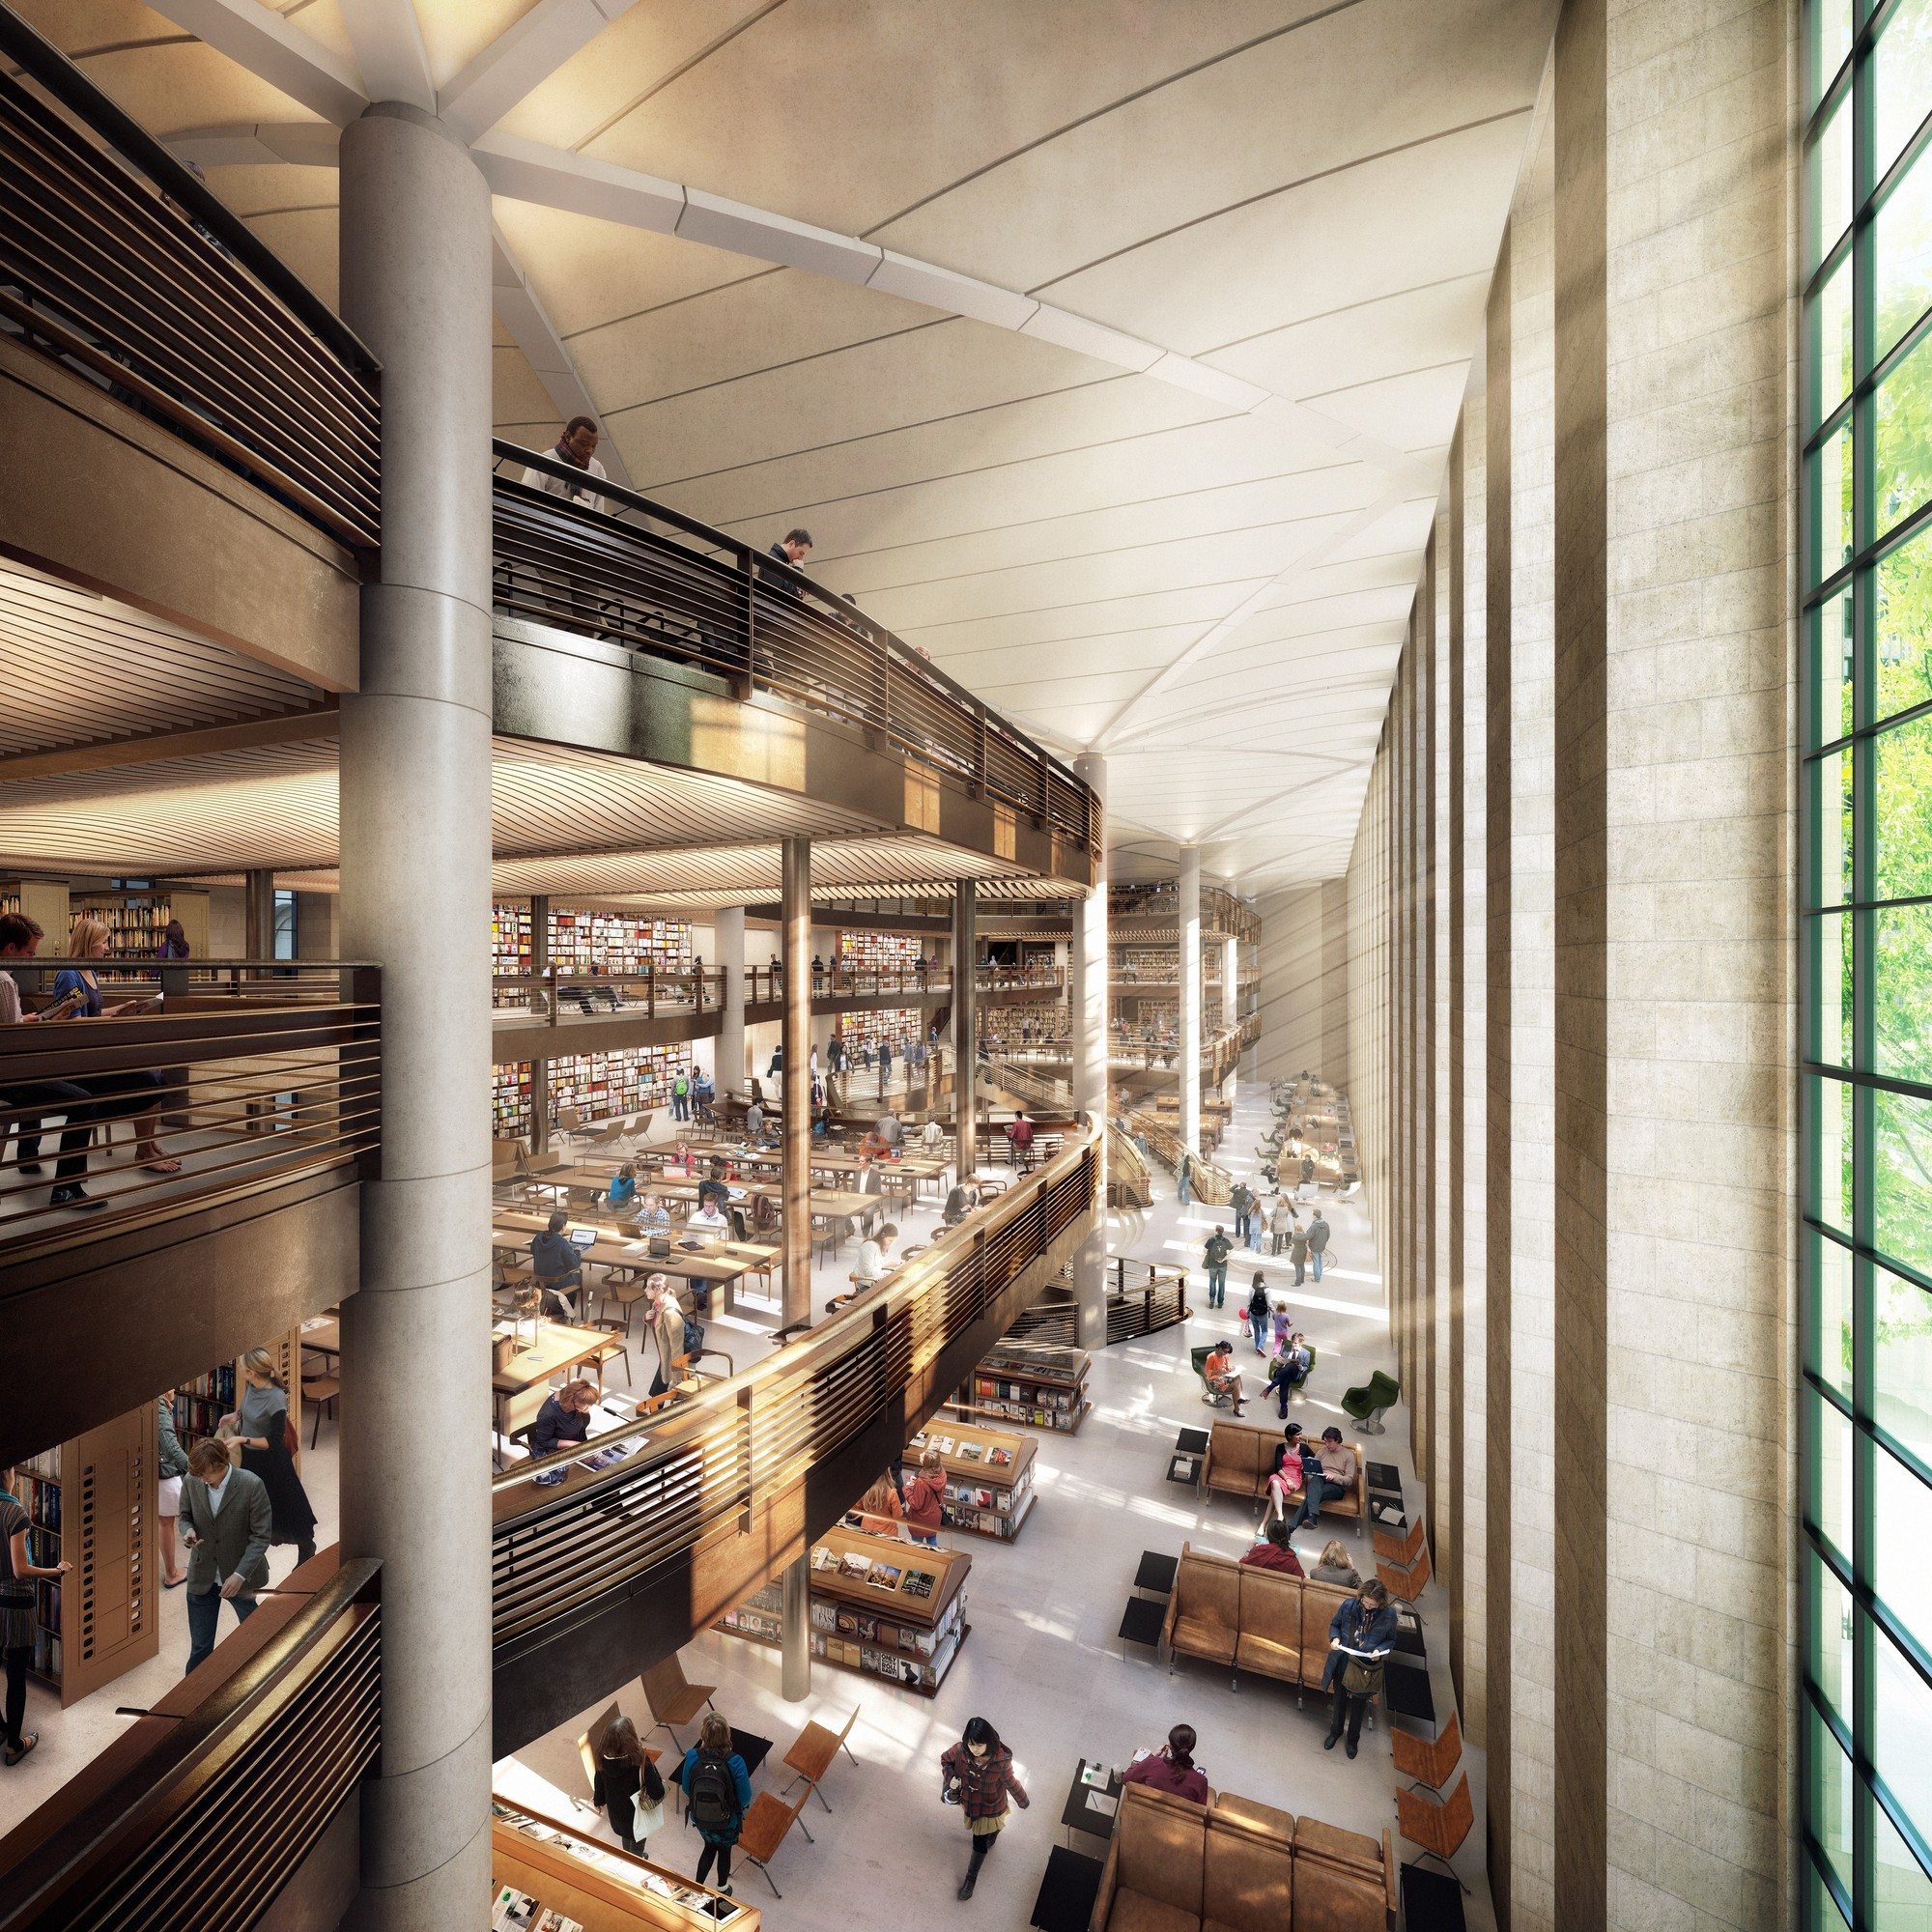 New York Public Library Scraps Foster-Designed Renovation Plans, Foster + Partners renovation scheme. Rendering by dbox. Image © Foster + Partners